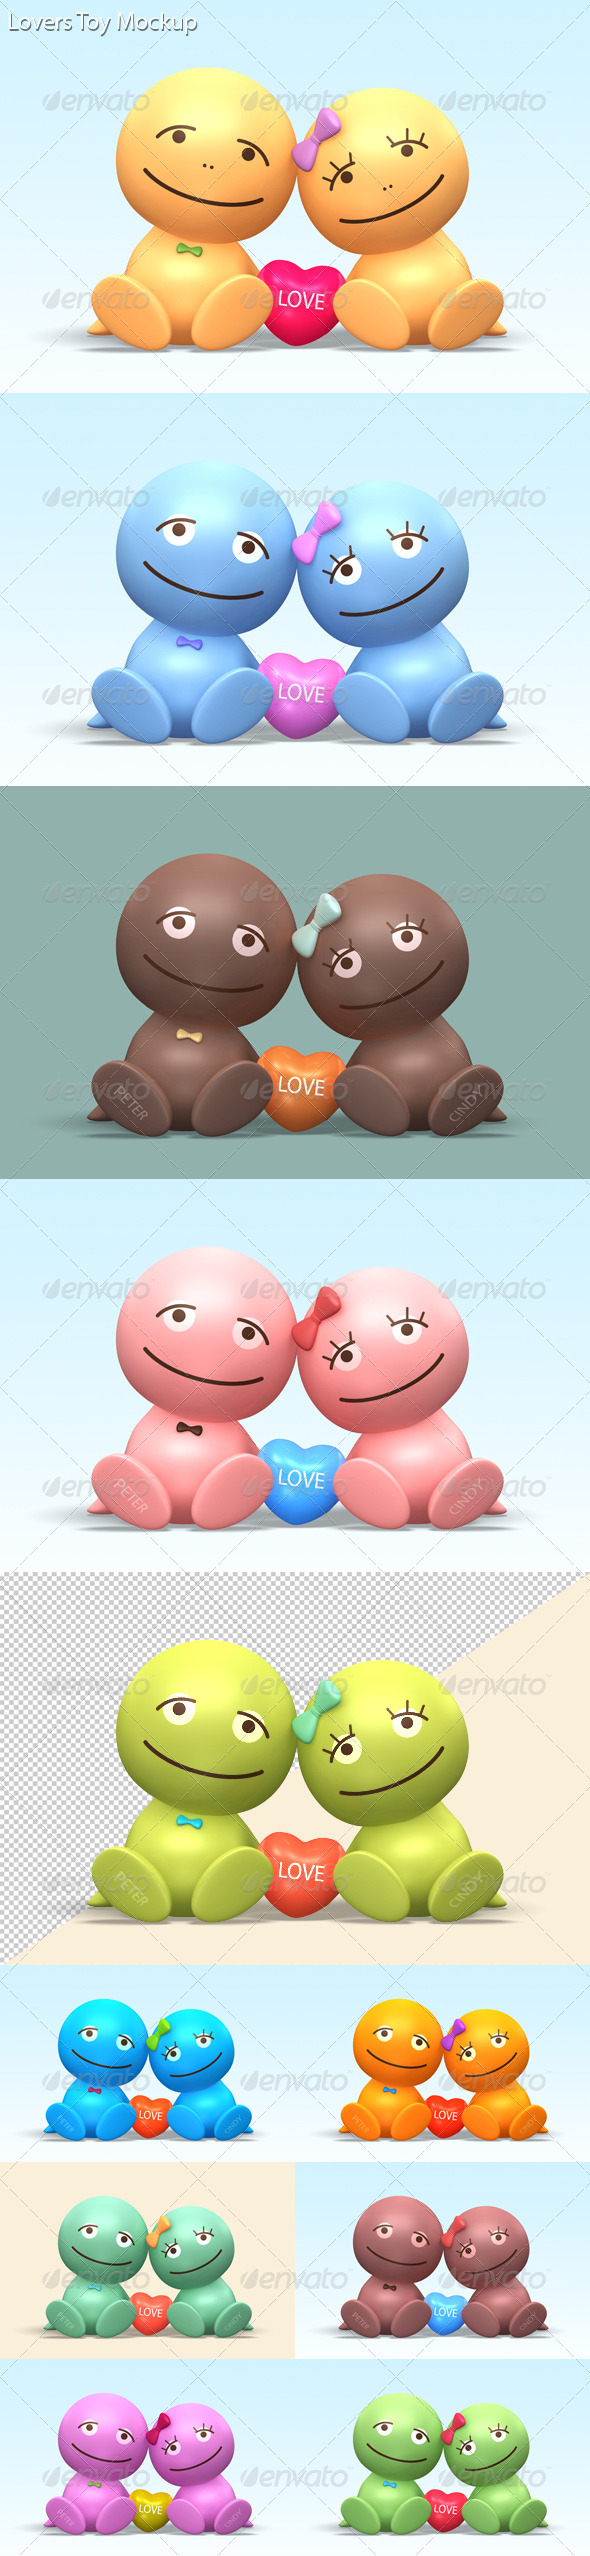 GraphicRiver Lovers Toy Mock-up 3724568